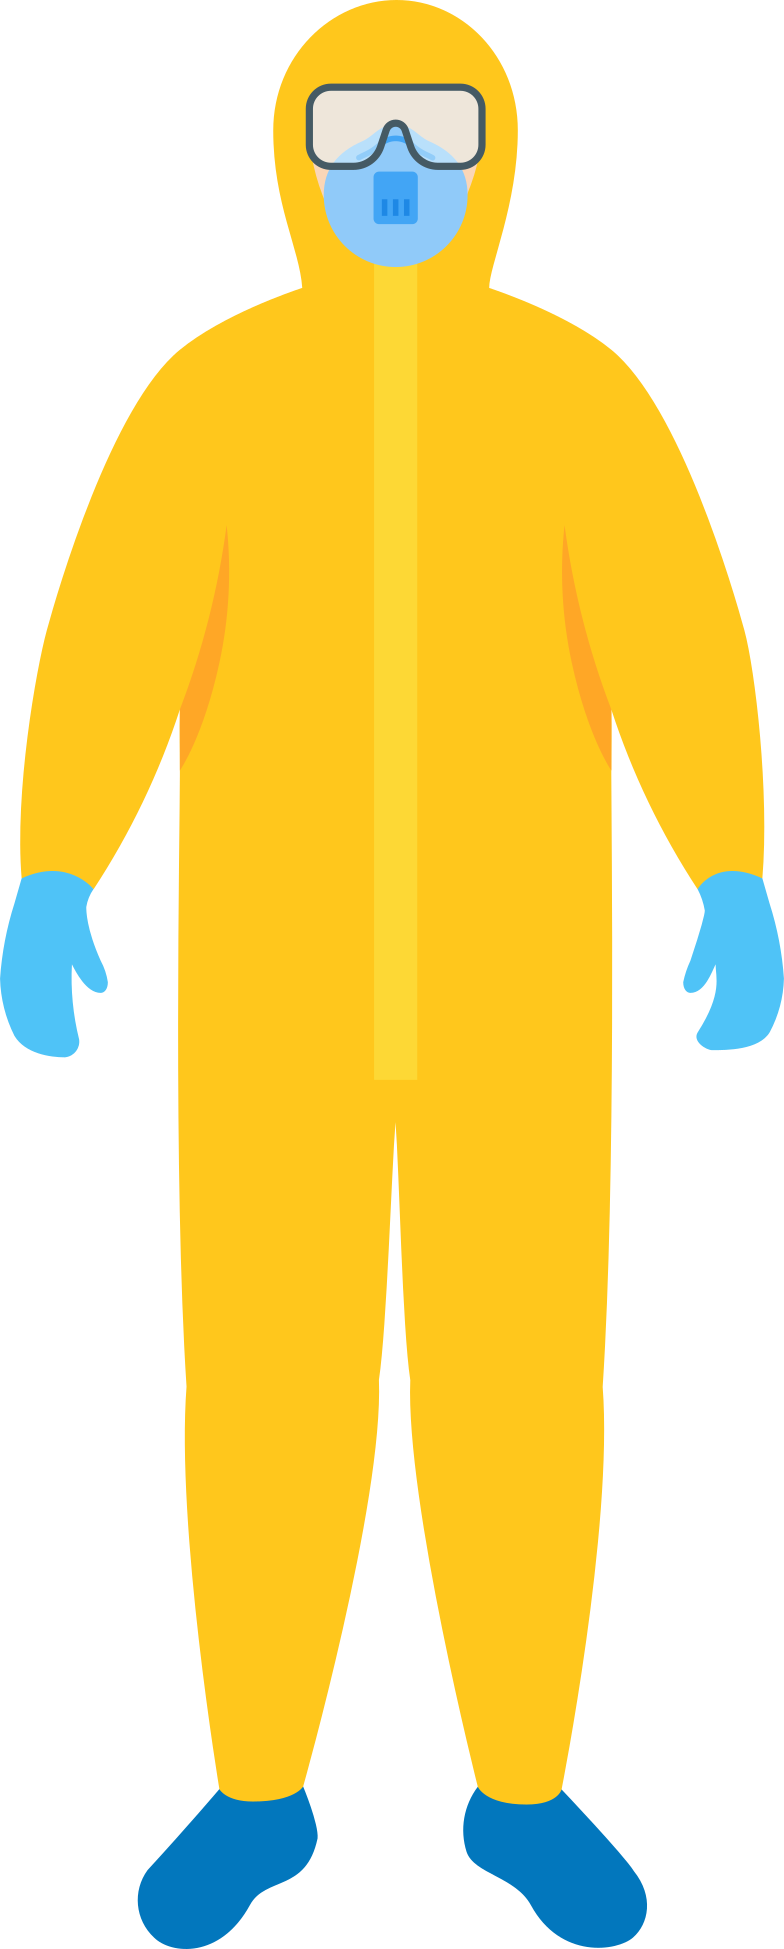 man-in-protective-suit-with-safety-mask-and-goggles Clipart illustration in PNG, SVG